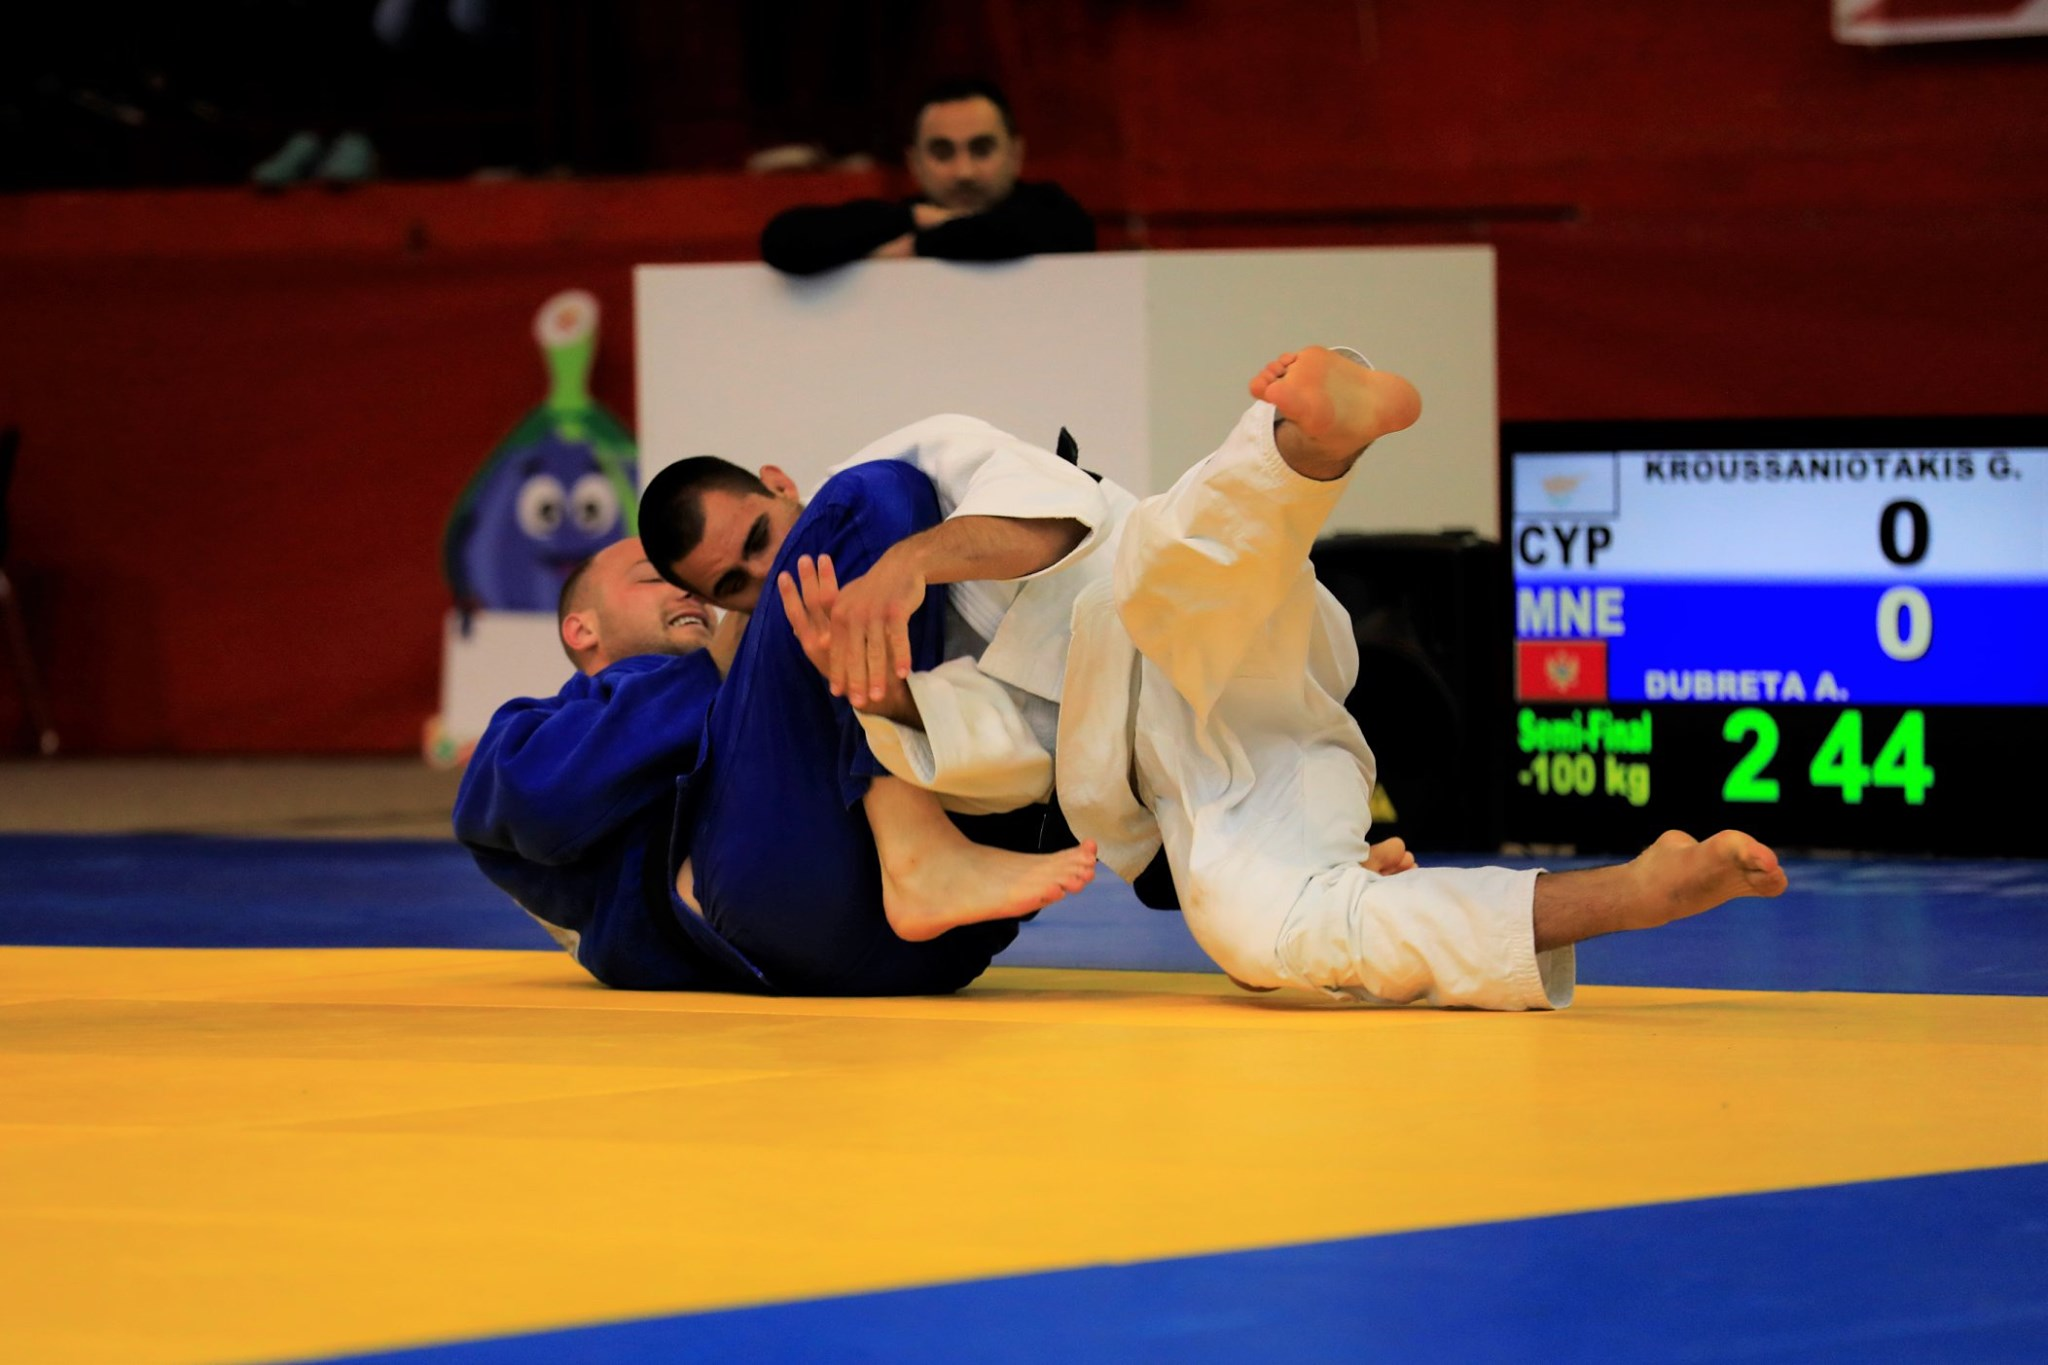 Giorgos Kroussaniotakis in action - Photo: Cyprus Olympic Committee